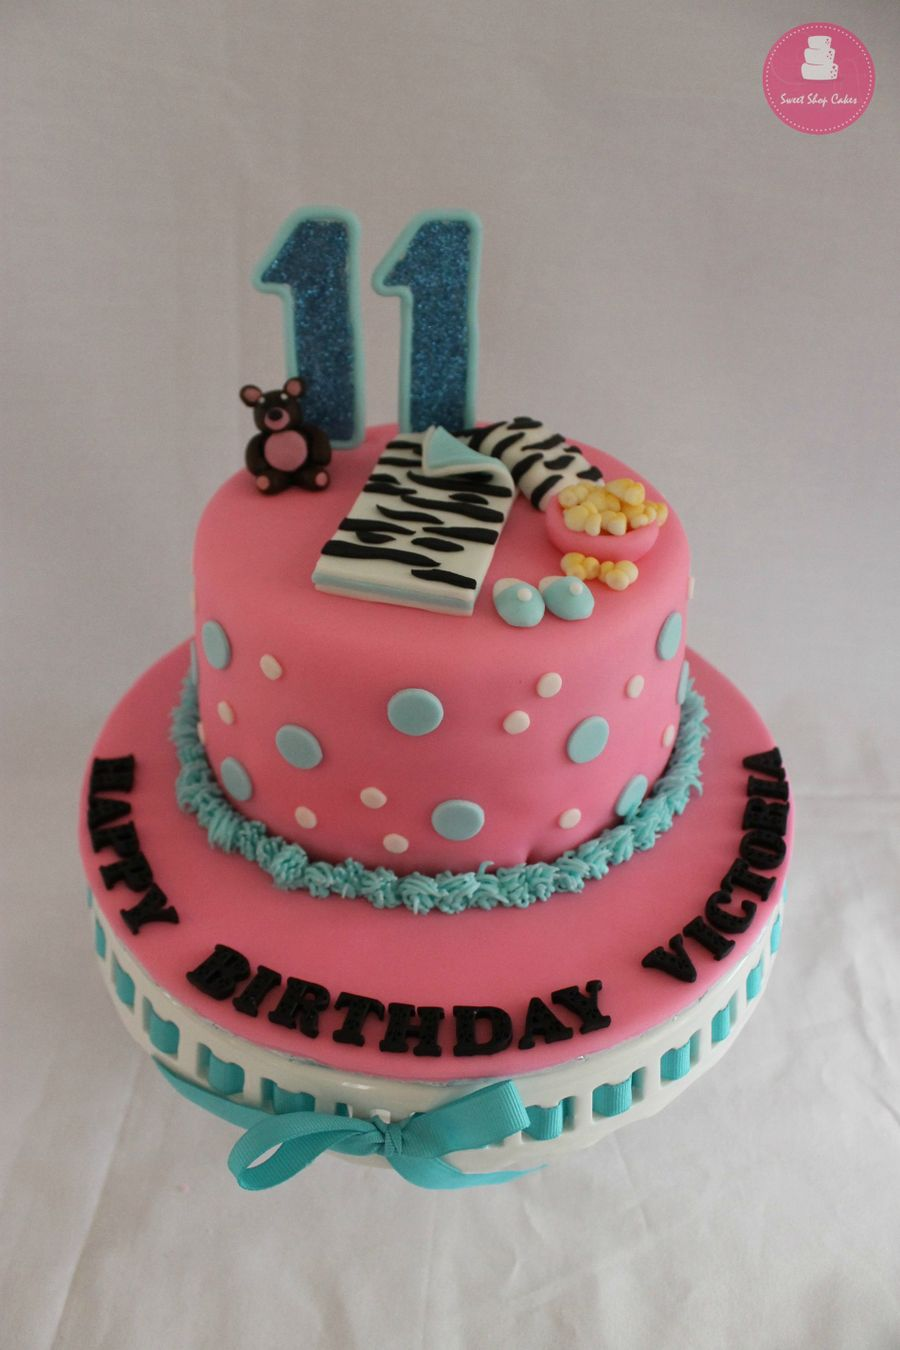 Slumber Party Birthday Cake - CakeCentral.com